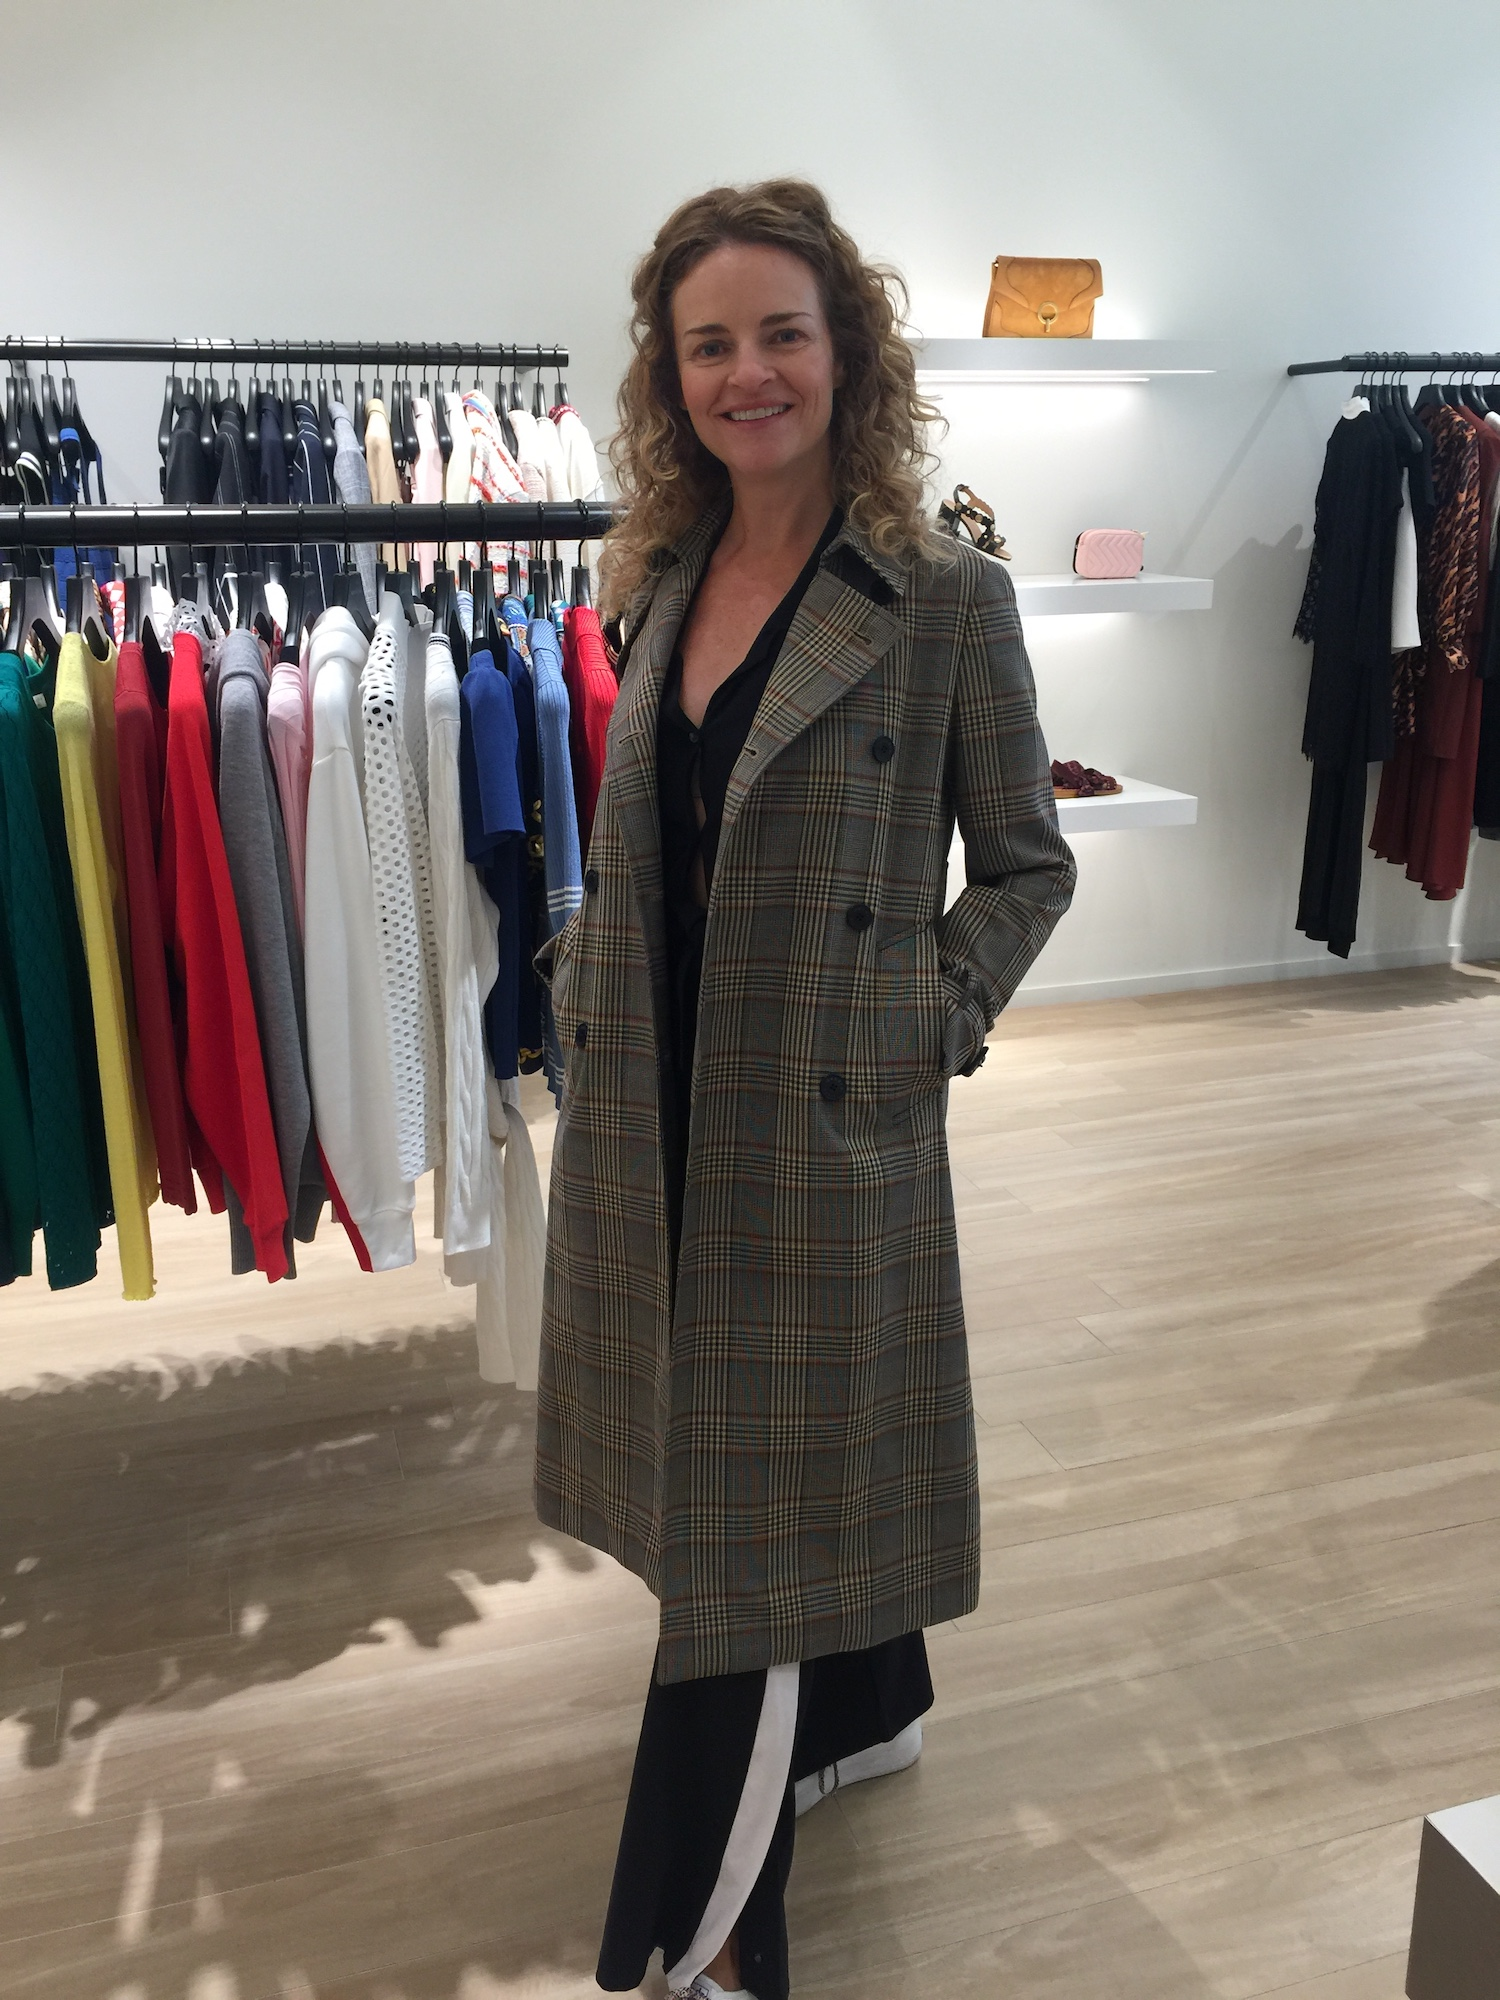 This chic plaid coat is the fall piece you'll reach for again and again. Sandro, $ 800.